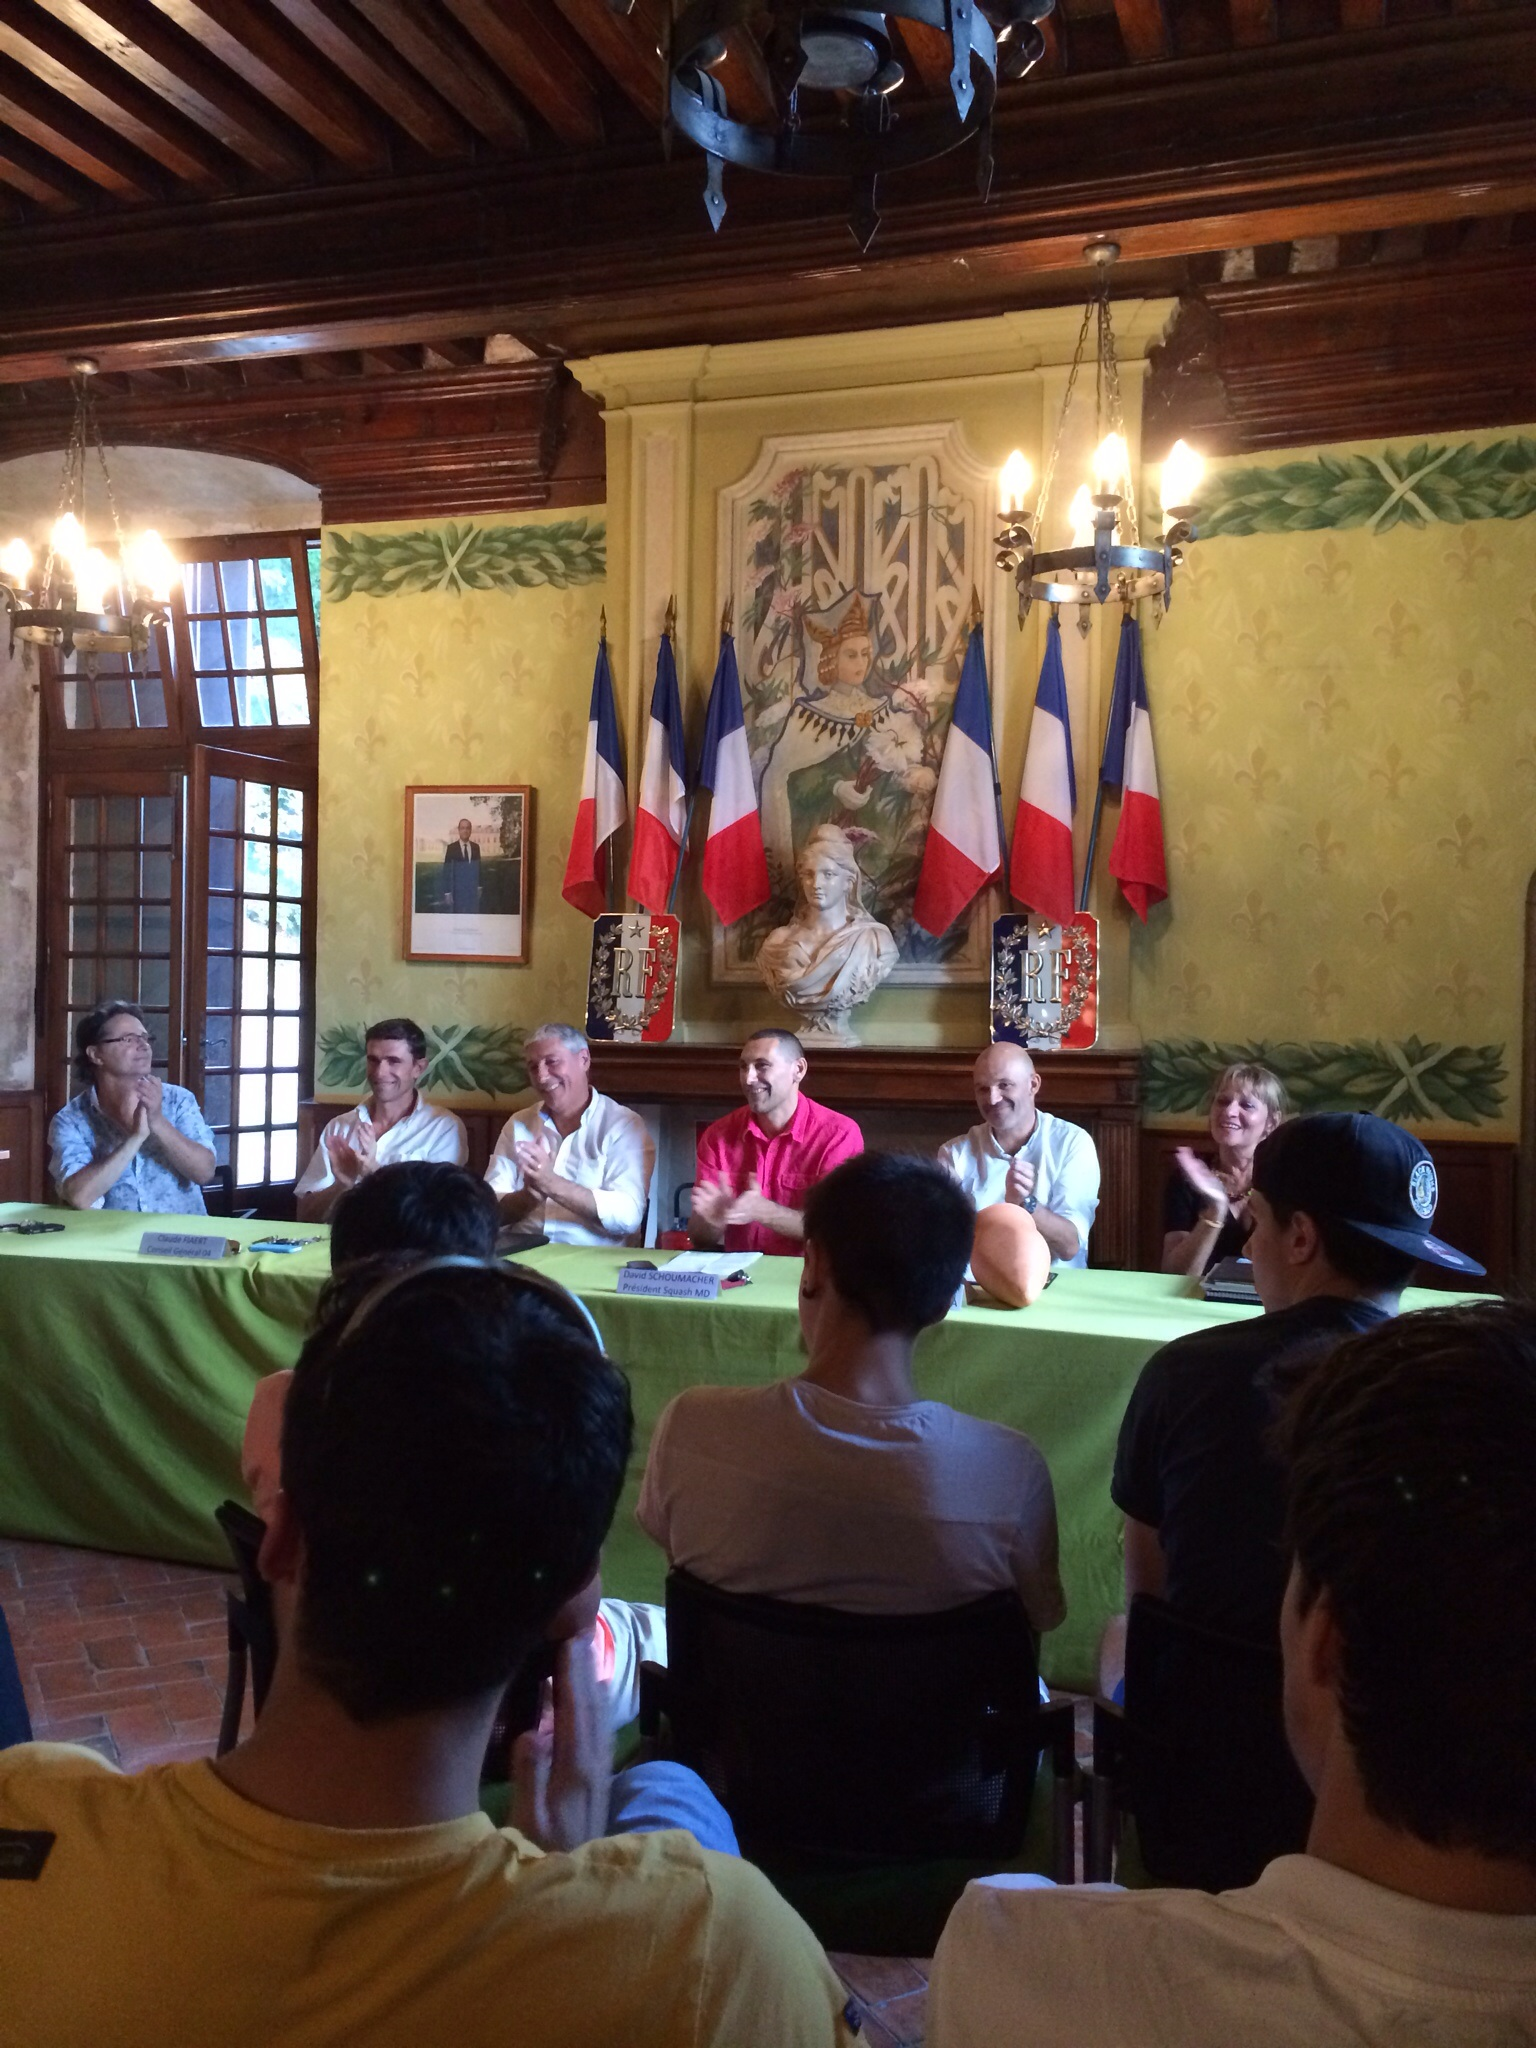 Opening tournament press conference hosted by the mayor of the village, held in a 17th century castle. ESPN must have gotten lost, didn't see them there